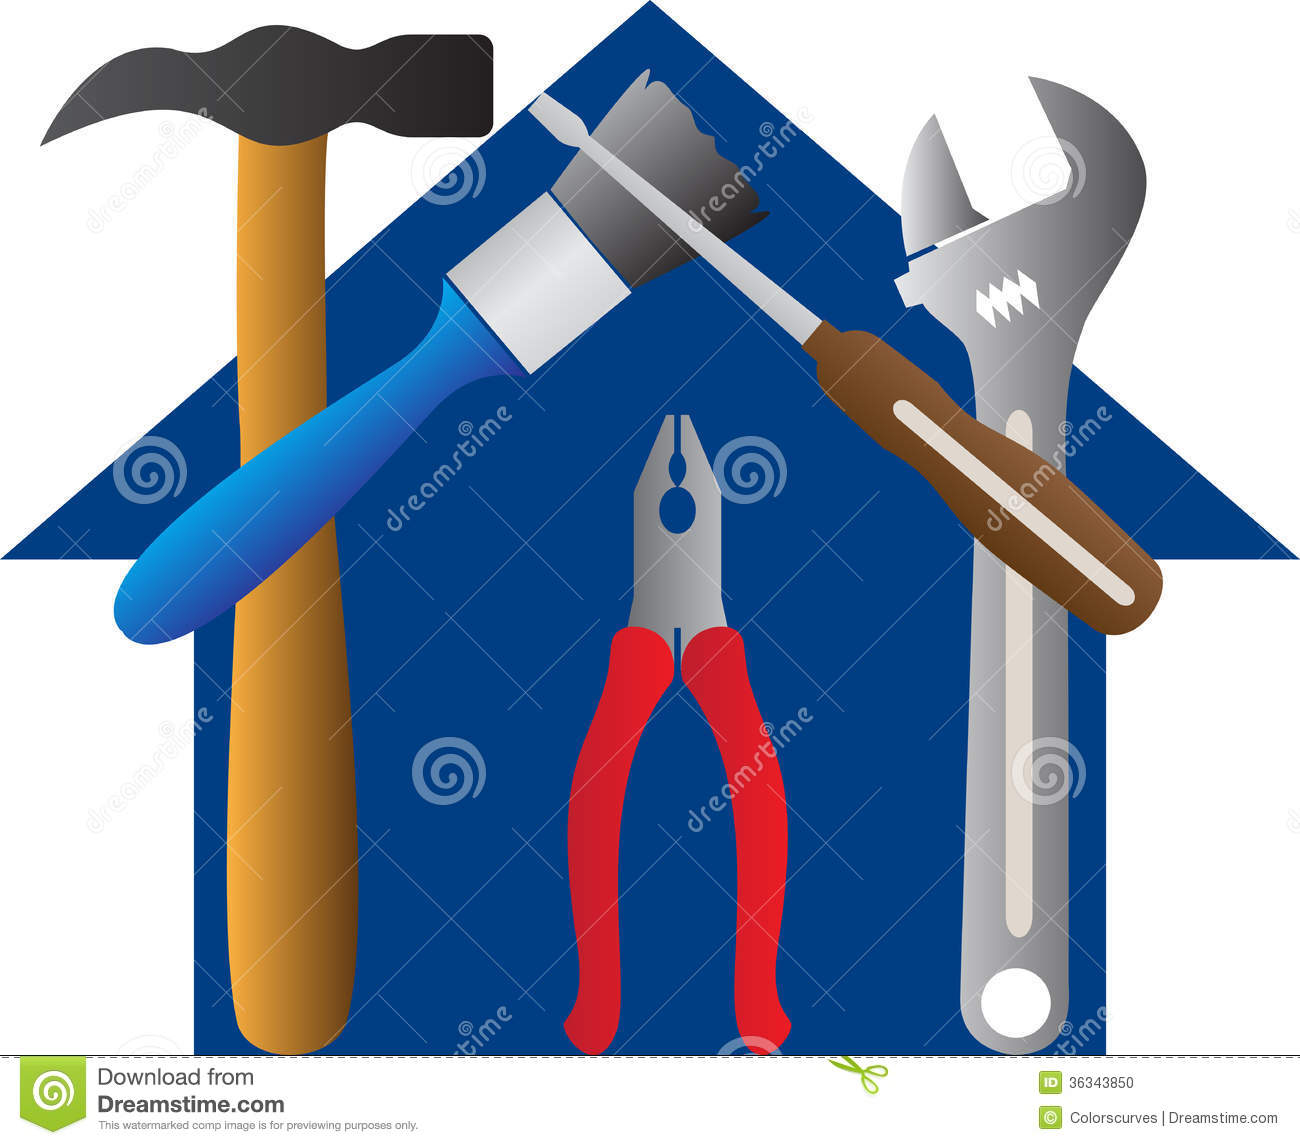 Tools home stock photo image 36343850 for Home architecture tools